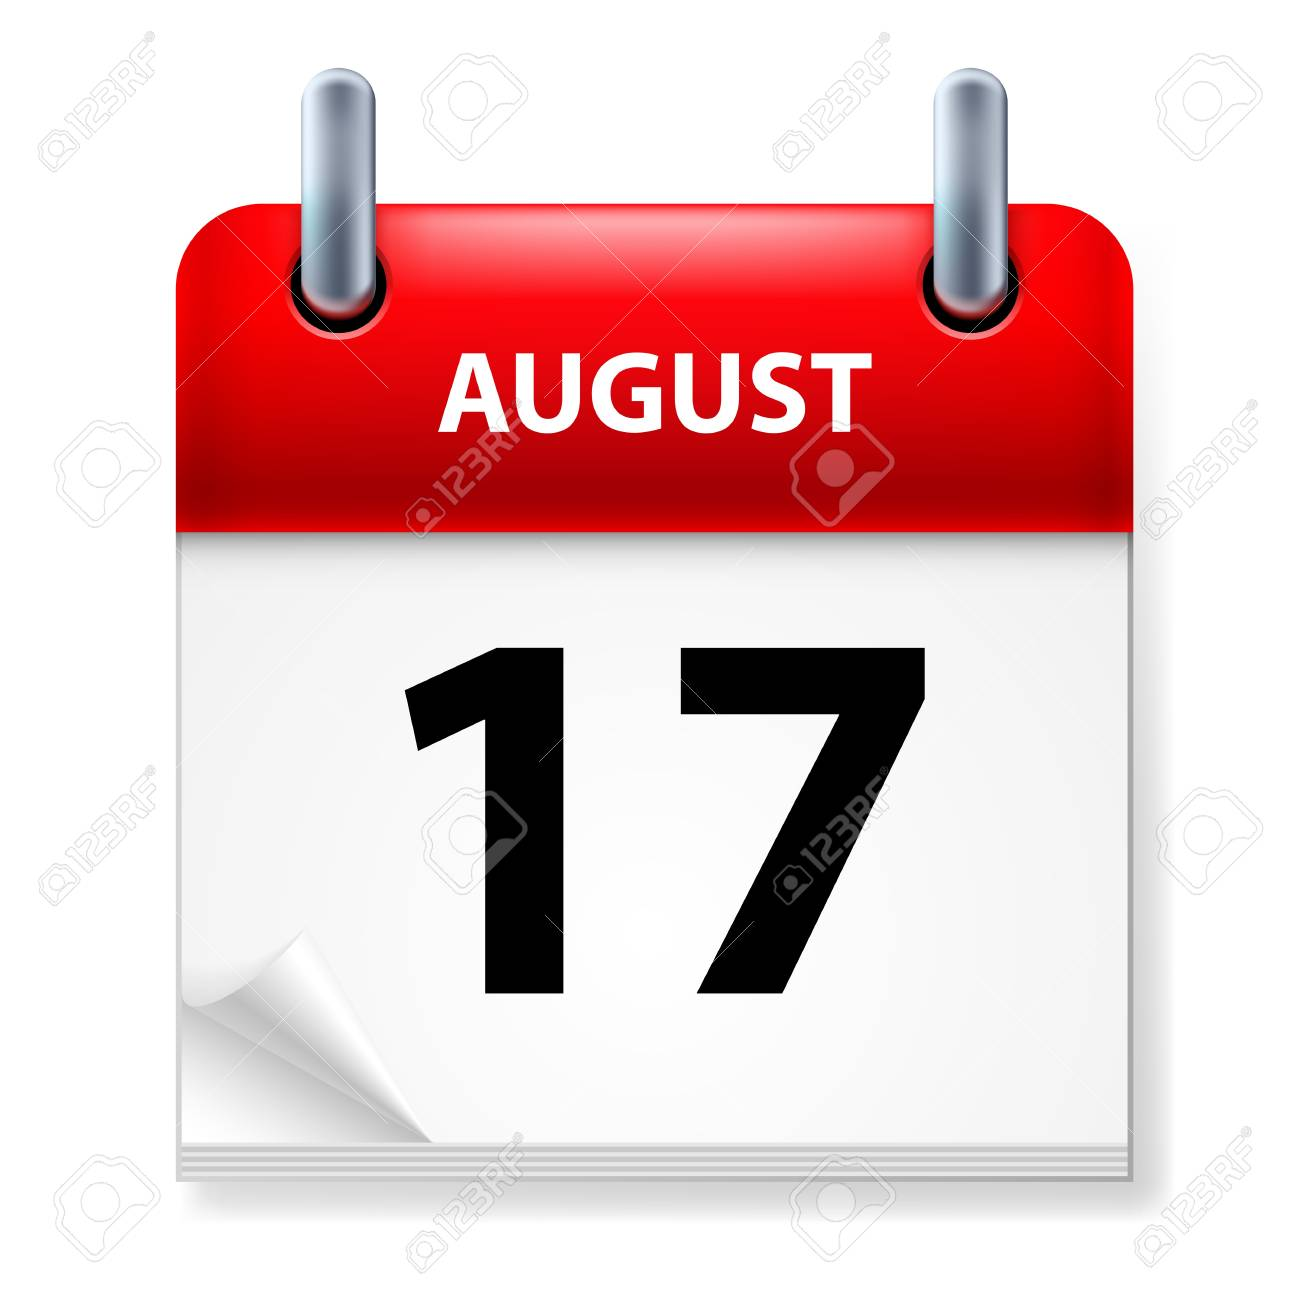 Seventeenth in August Calendar icon on white background Stock Vector - 14495528